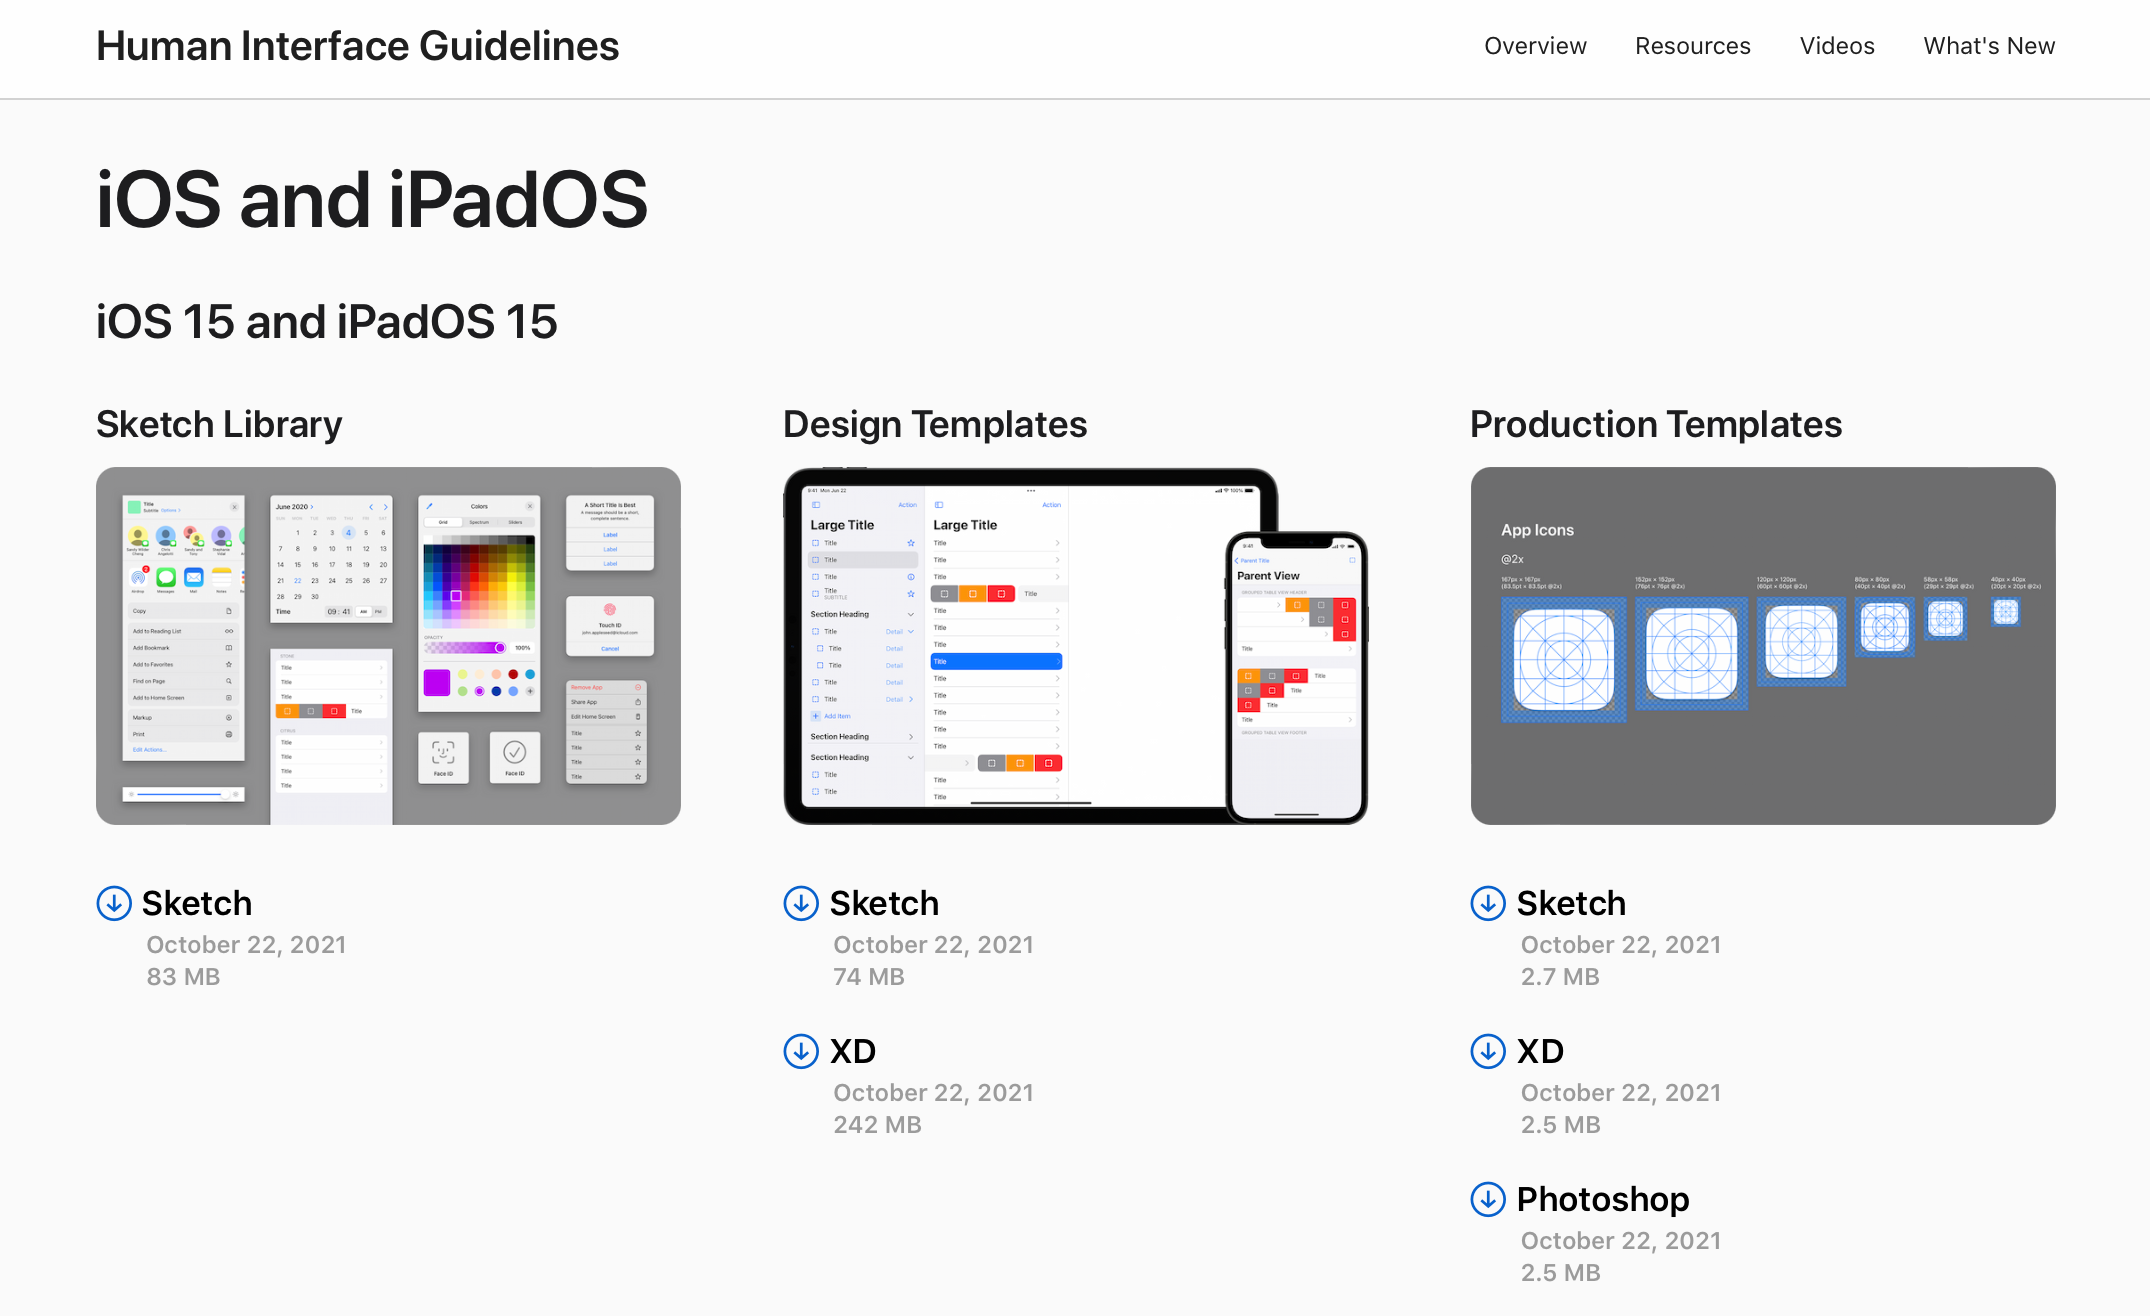 9to5mac.com - Apple refreshes design resources for iOS 15 with new templates, fonts, and website